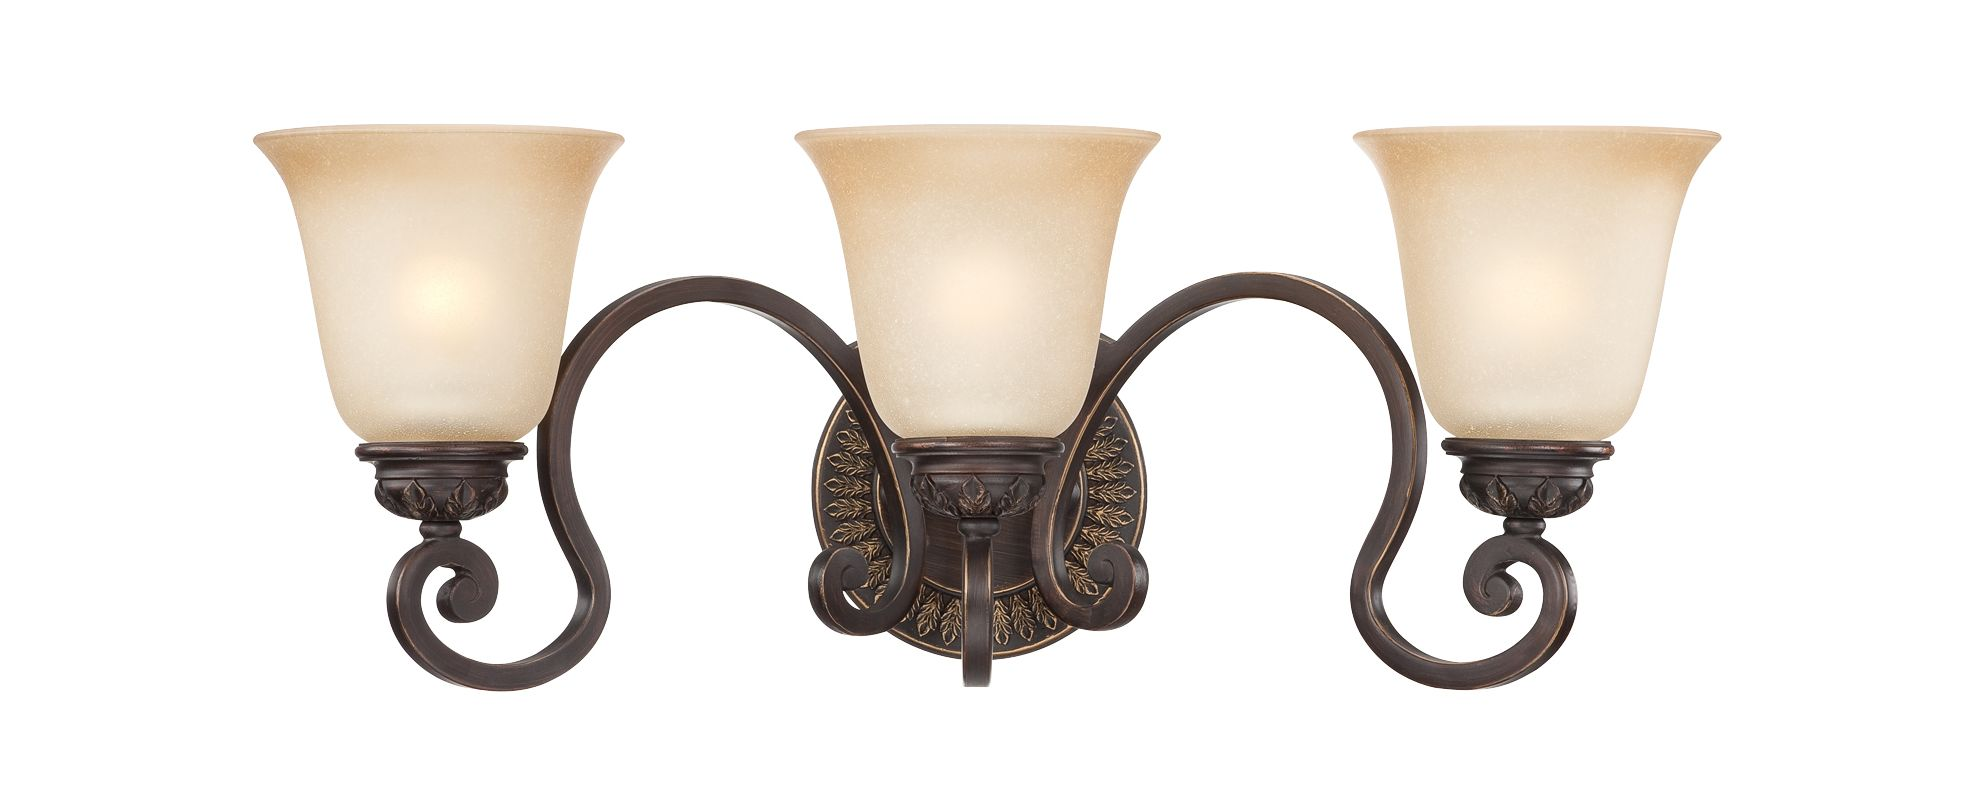 Jeremiah Lighting 28203 Josephine 3 Light Bathroom Vanity Light -